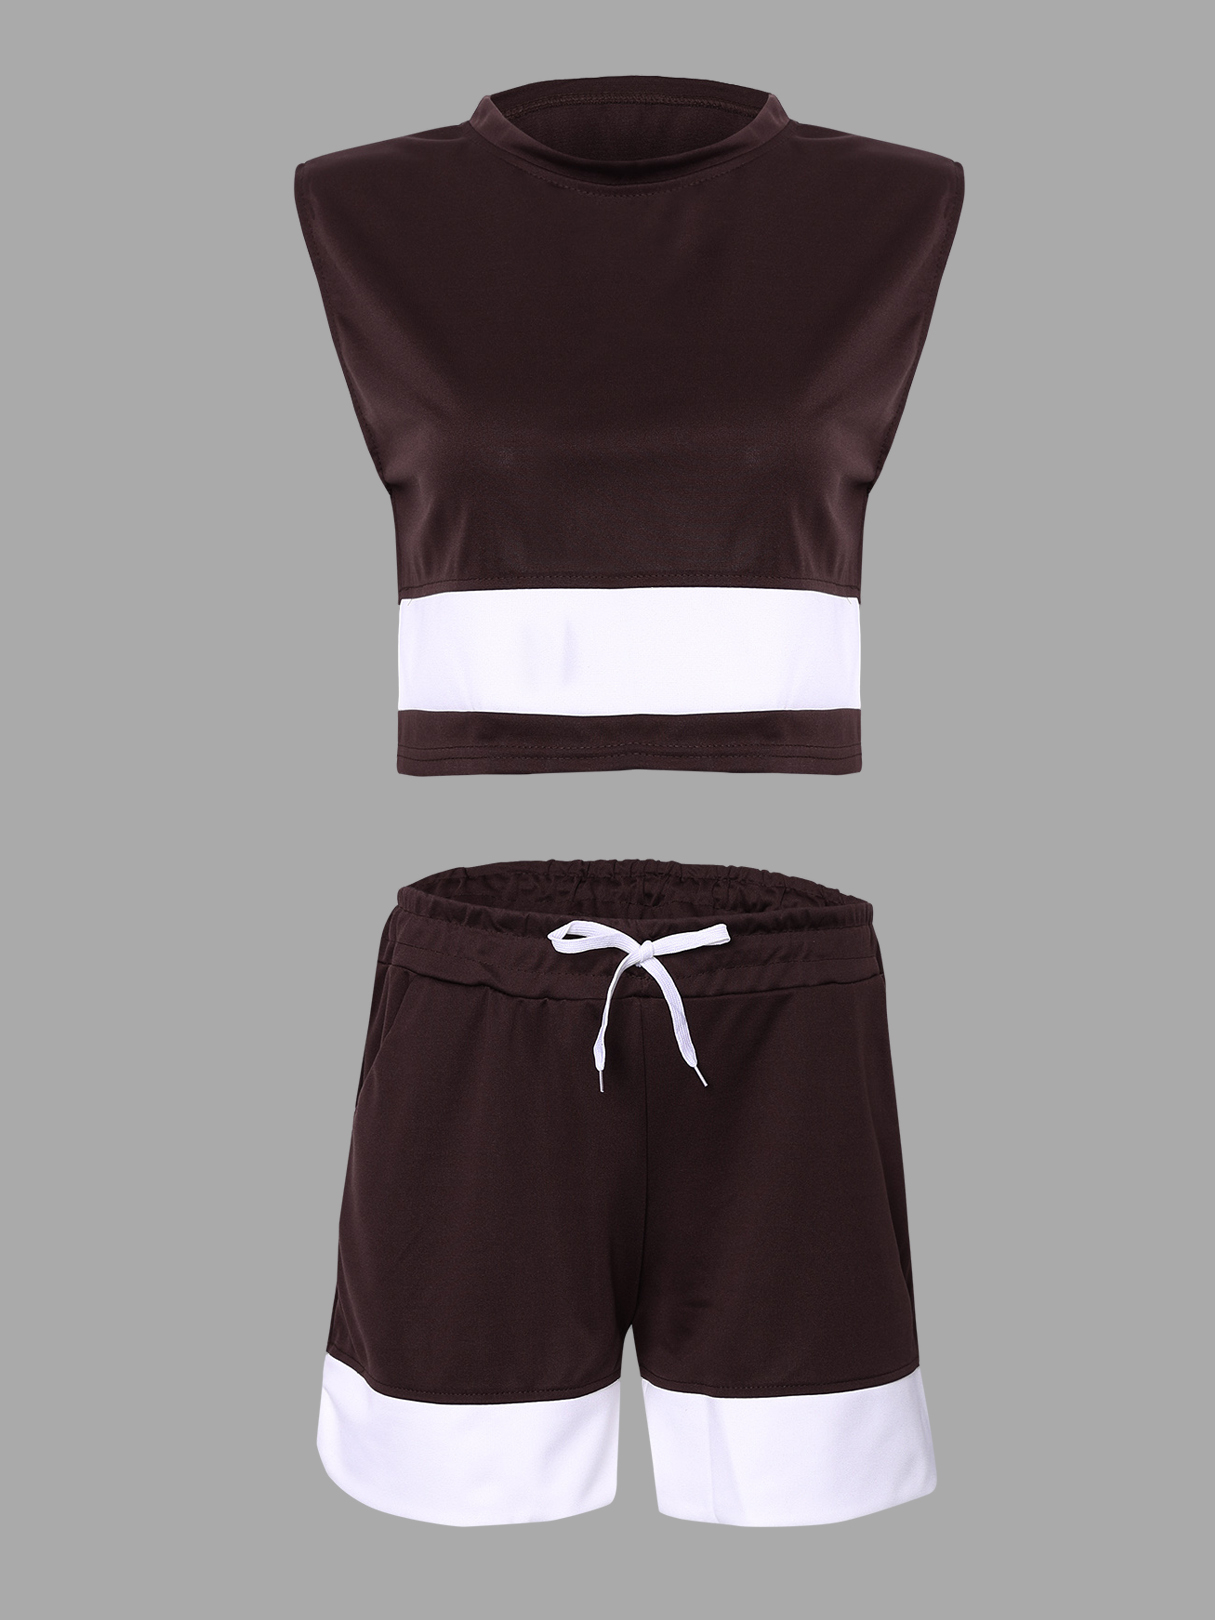 Brown Simple Sleeveless Crew Neck Crop Top & Drawstring Waist Shorts Co-ord tribe print crew neck co ord